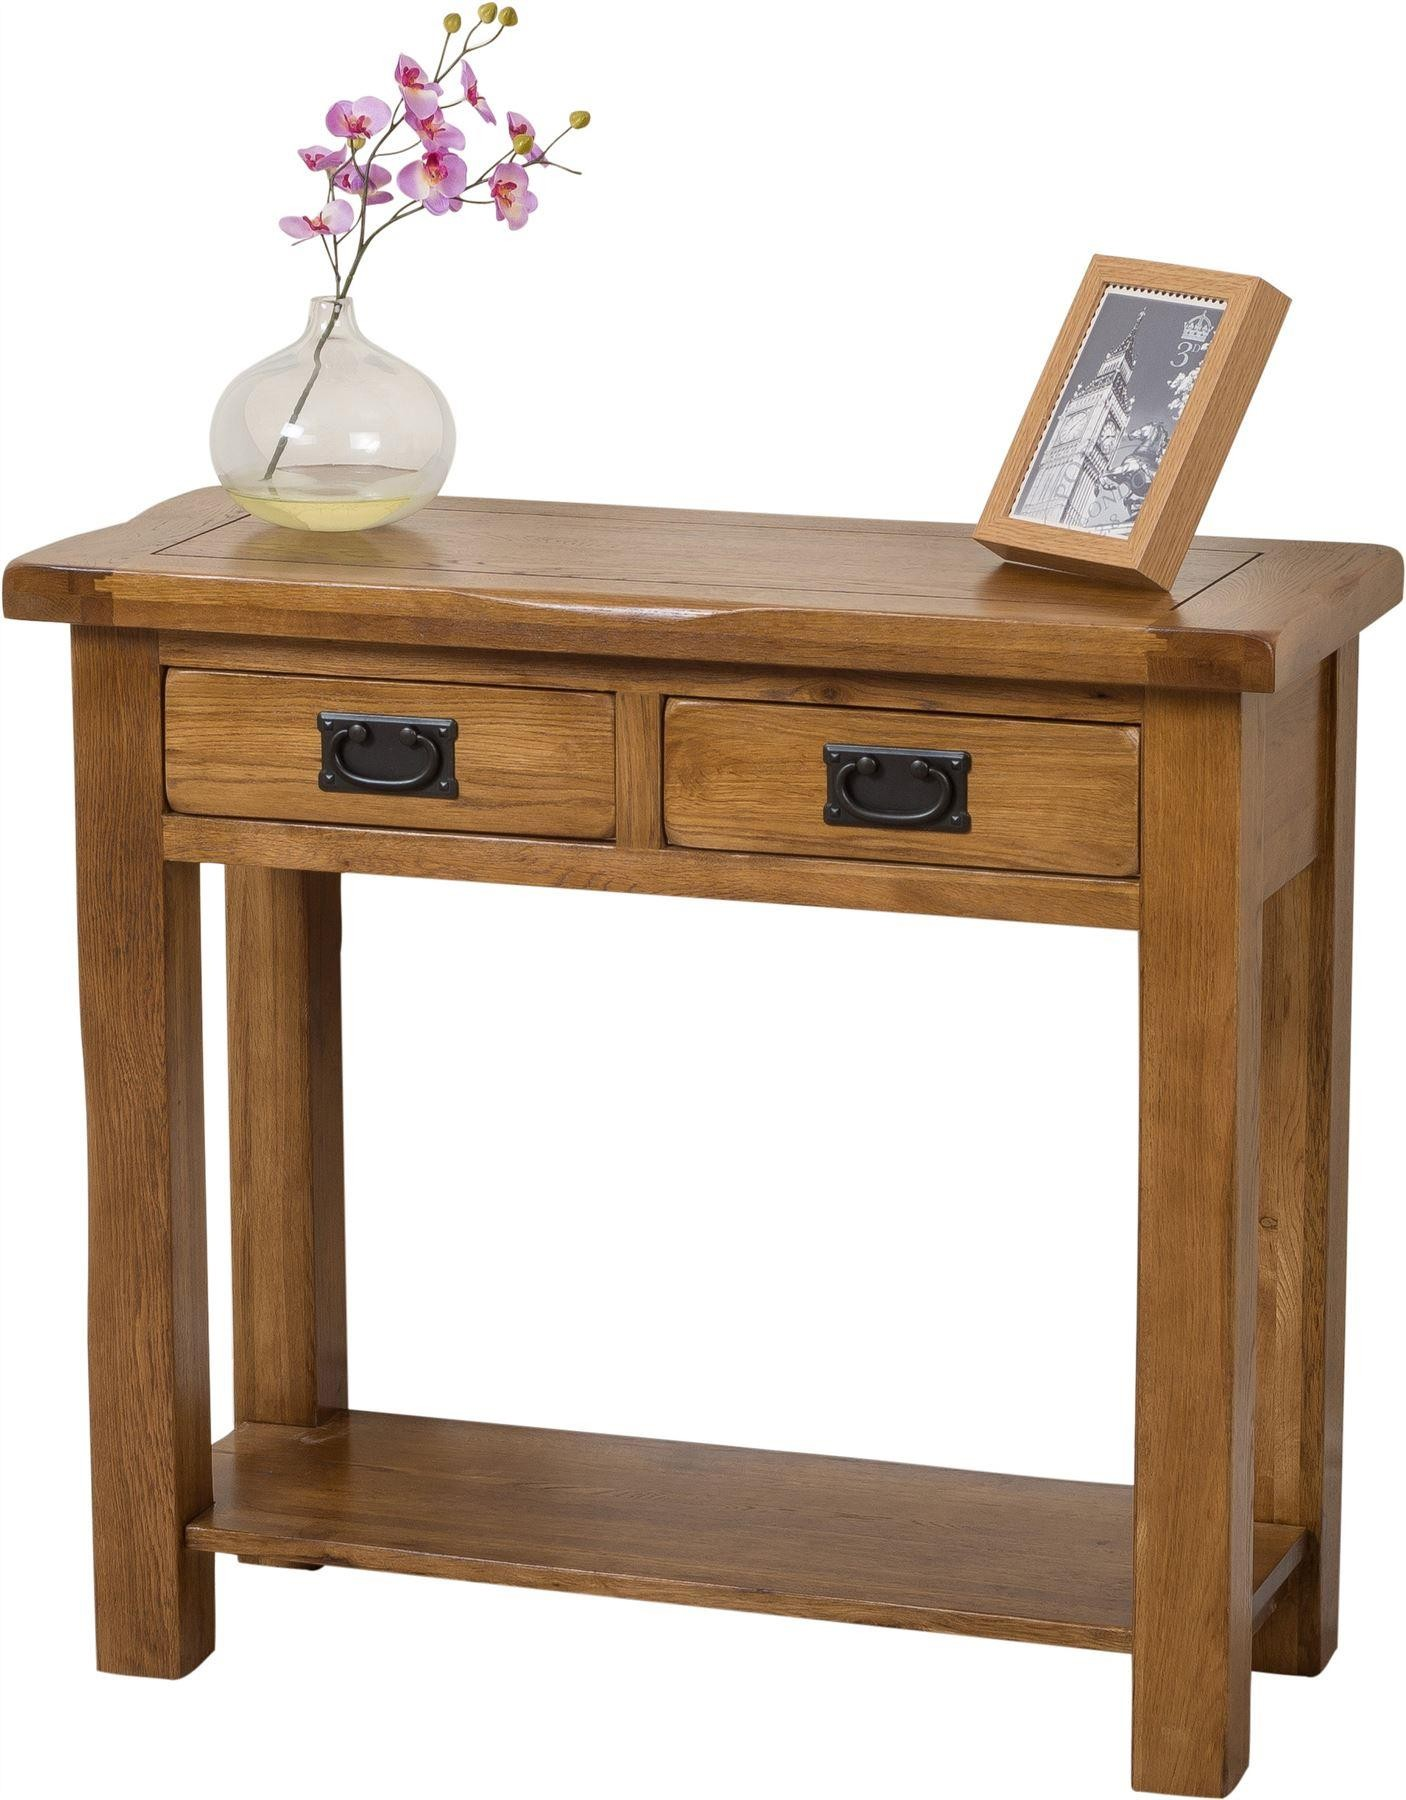 Cotswold Rustic Solid Oak Console Table